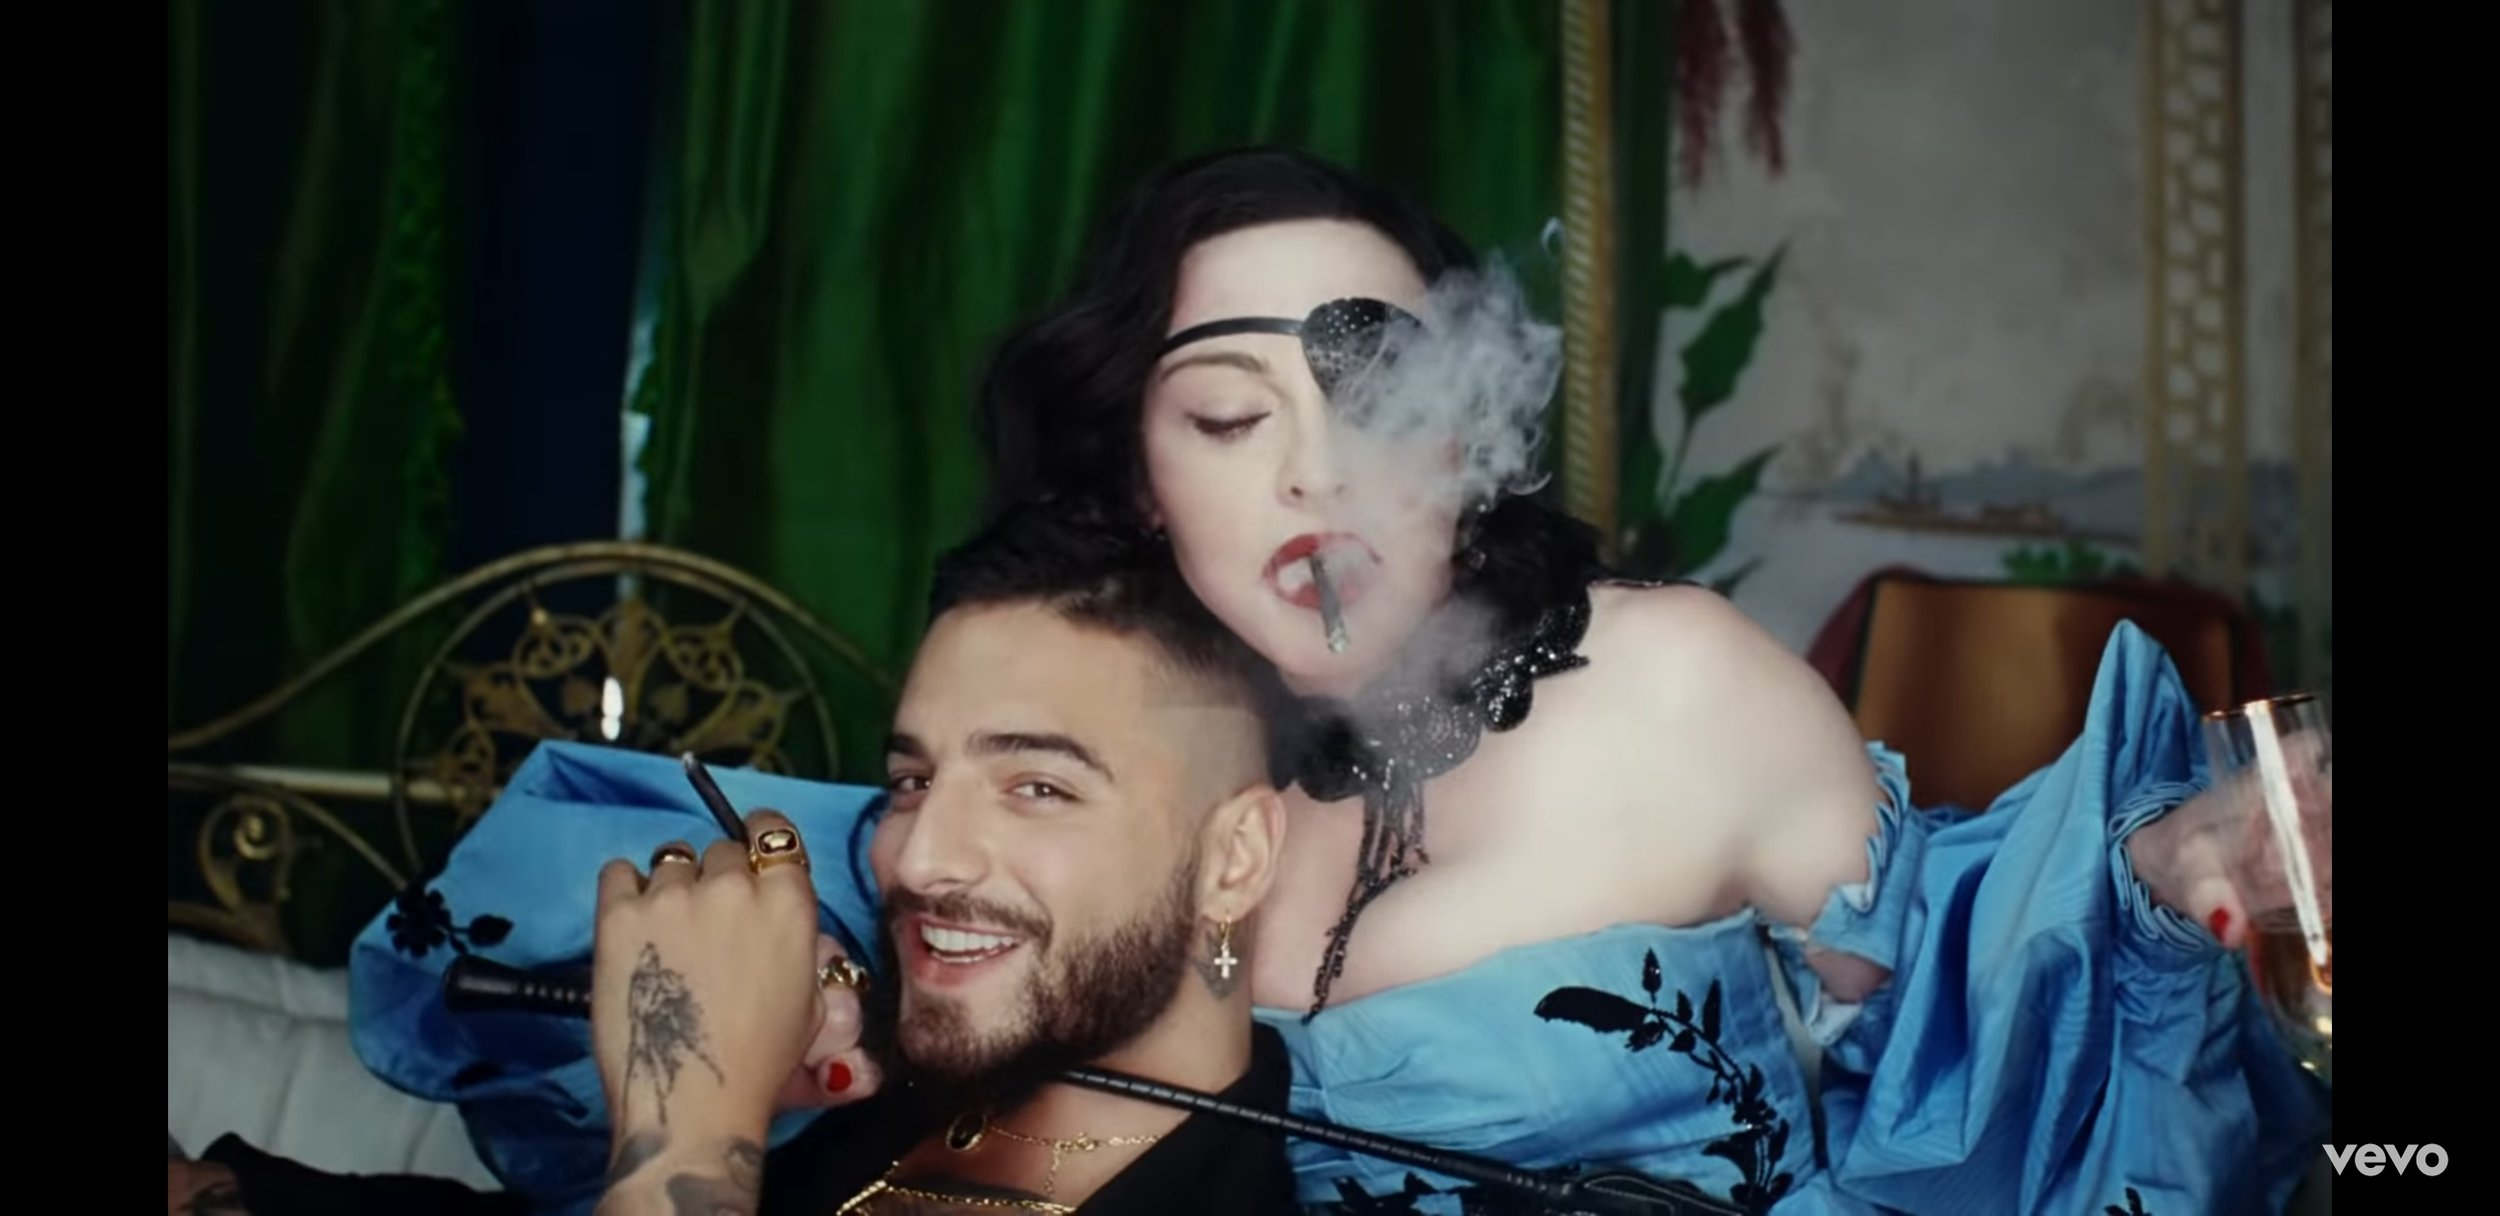 Maluma & Madonna in 'Medellín' Music Video/ YouTube